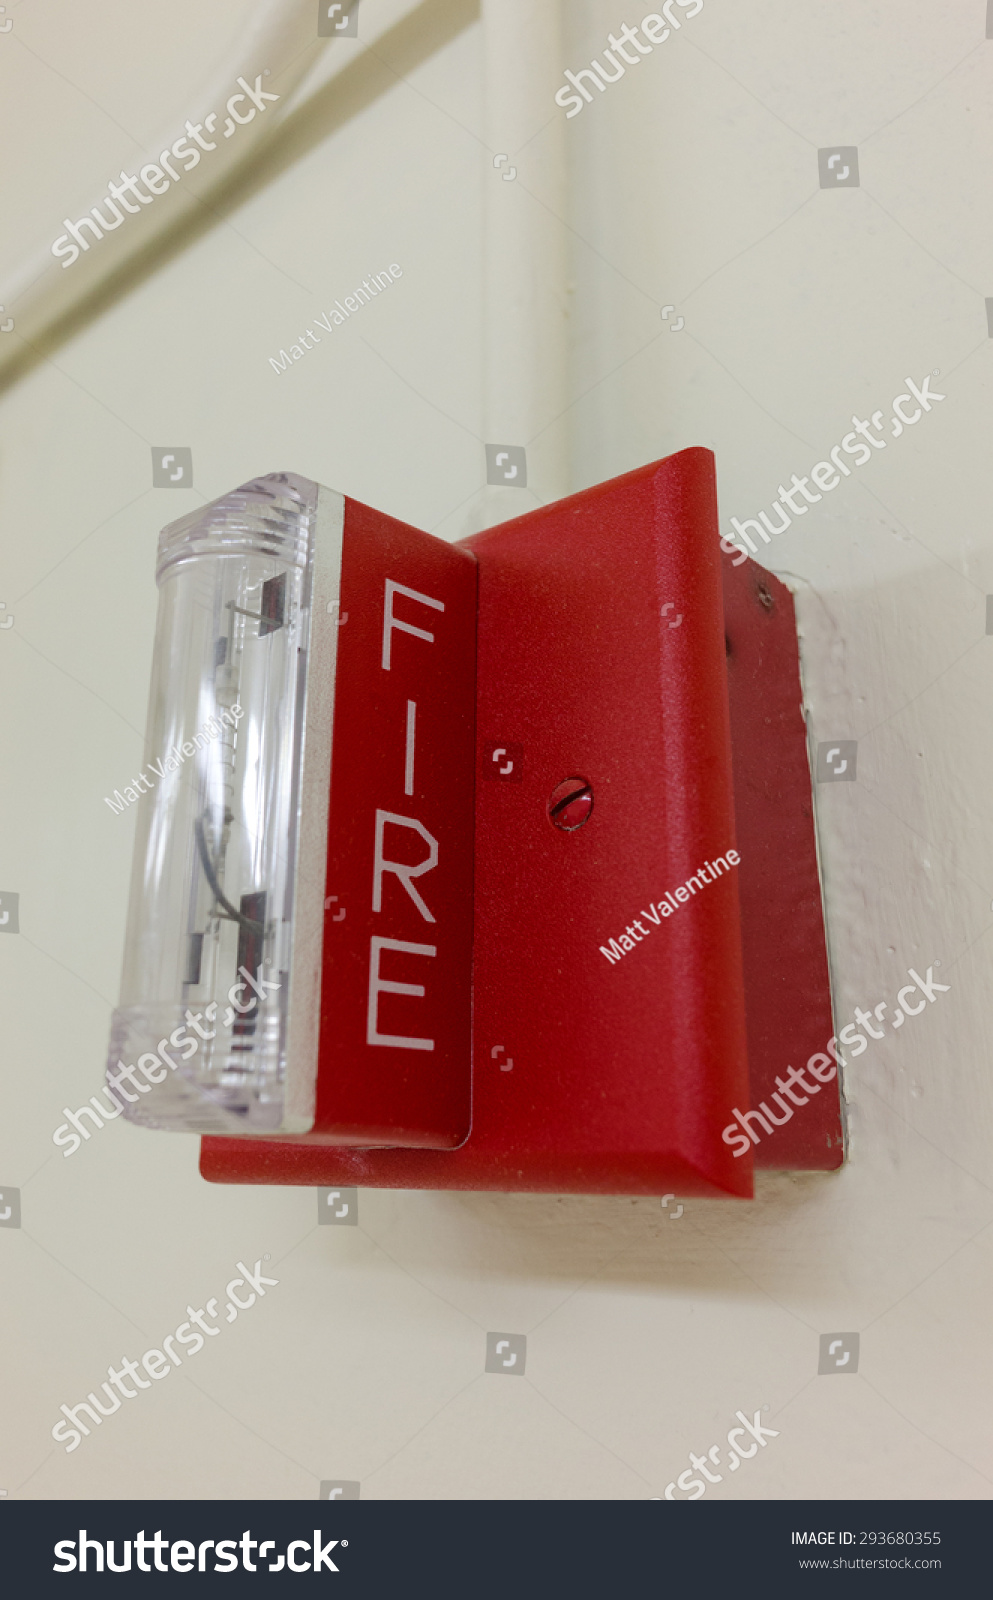 Fire Alarm Light On Wall When Stock Photo Edit Now 293680355 Emergency And A Flashing It Signals The Need To